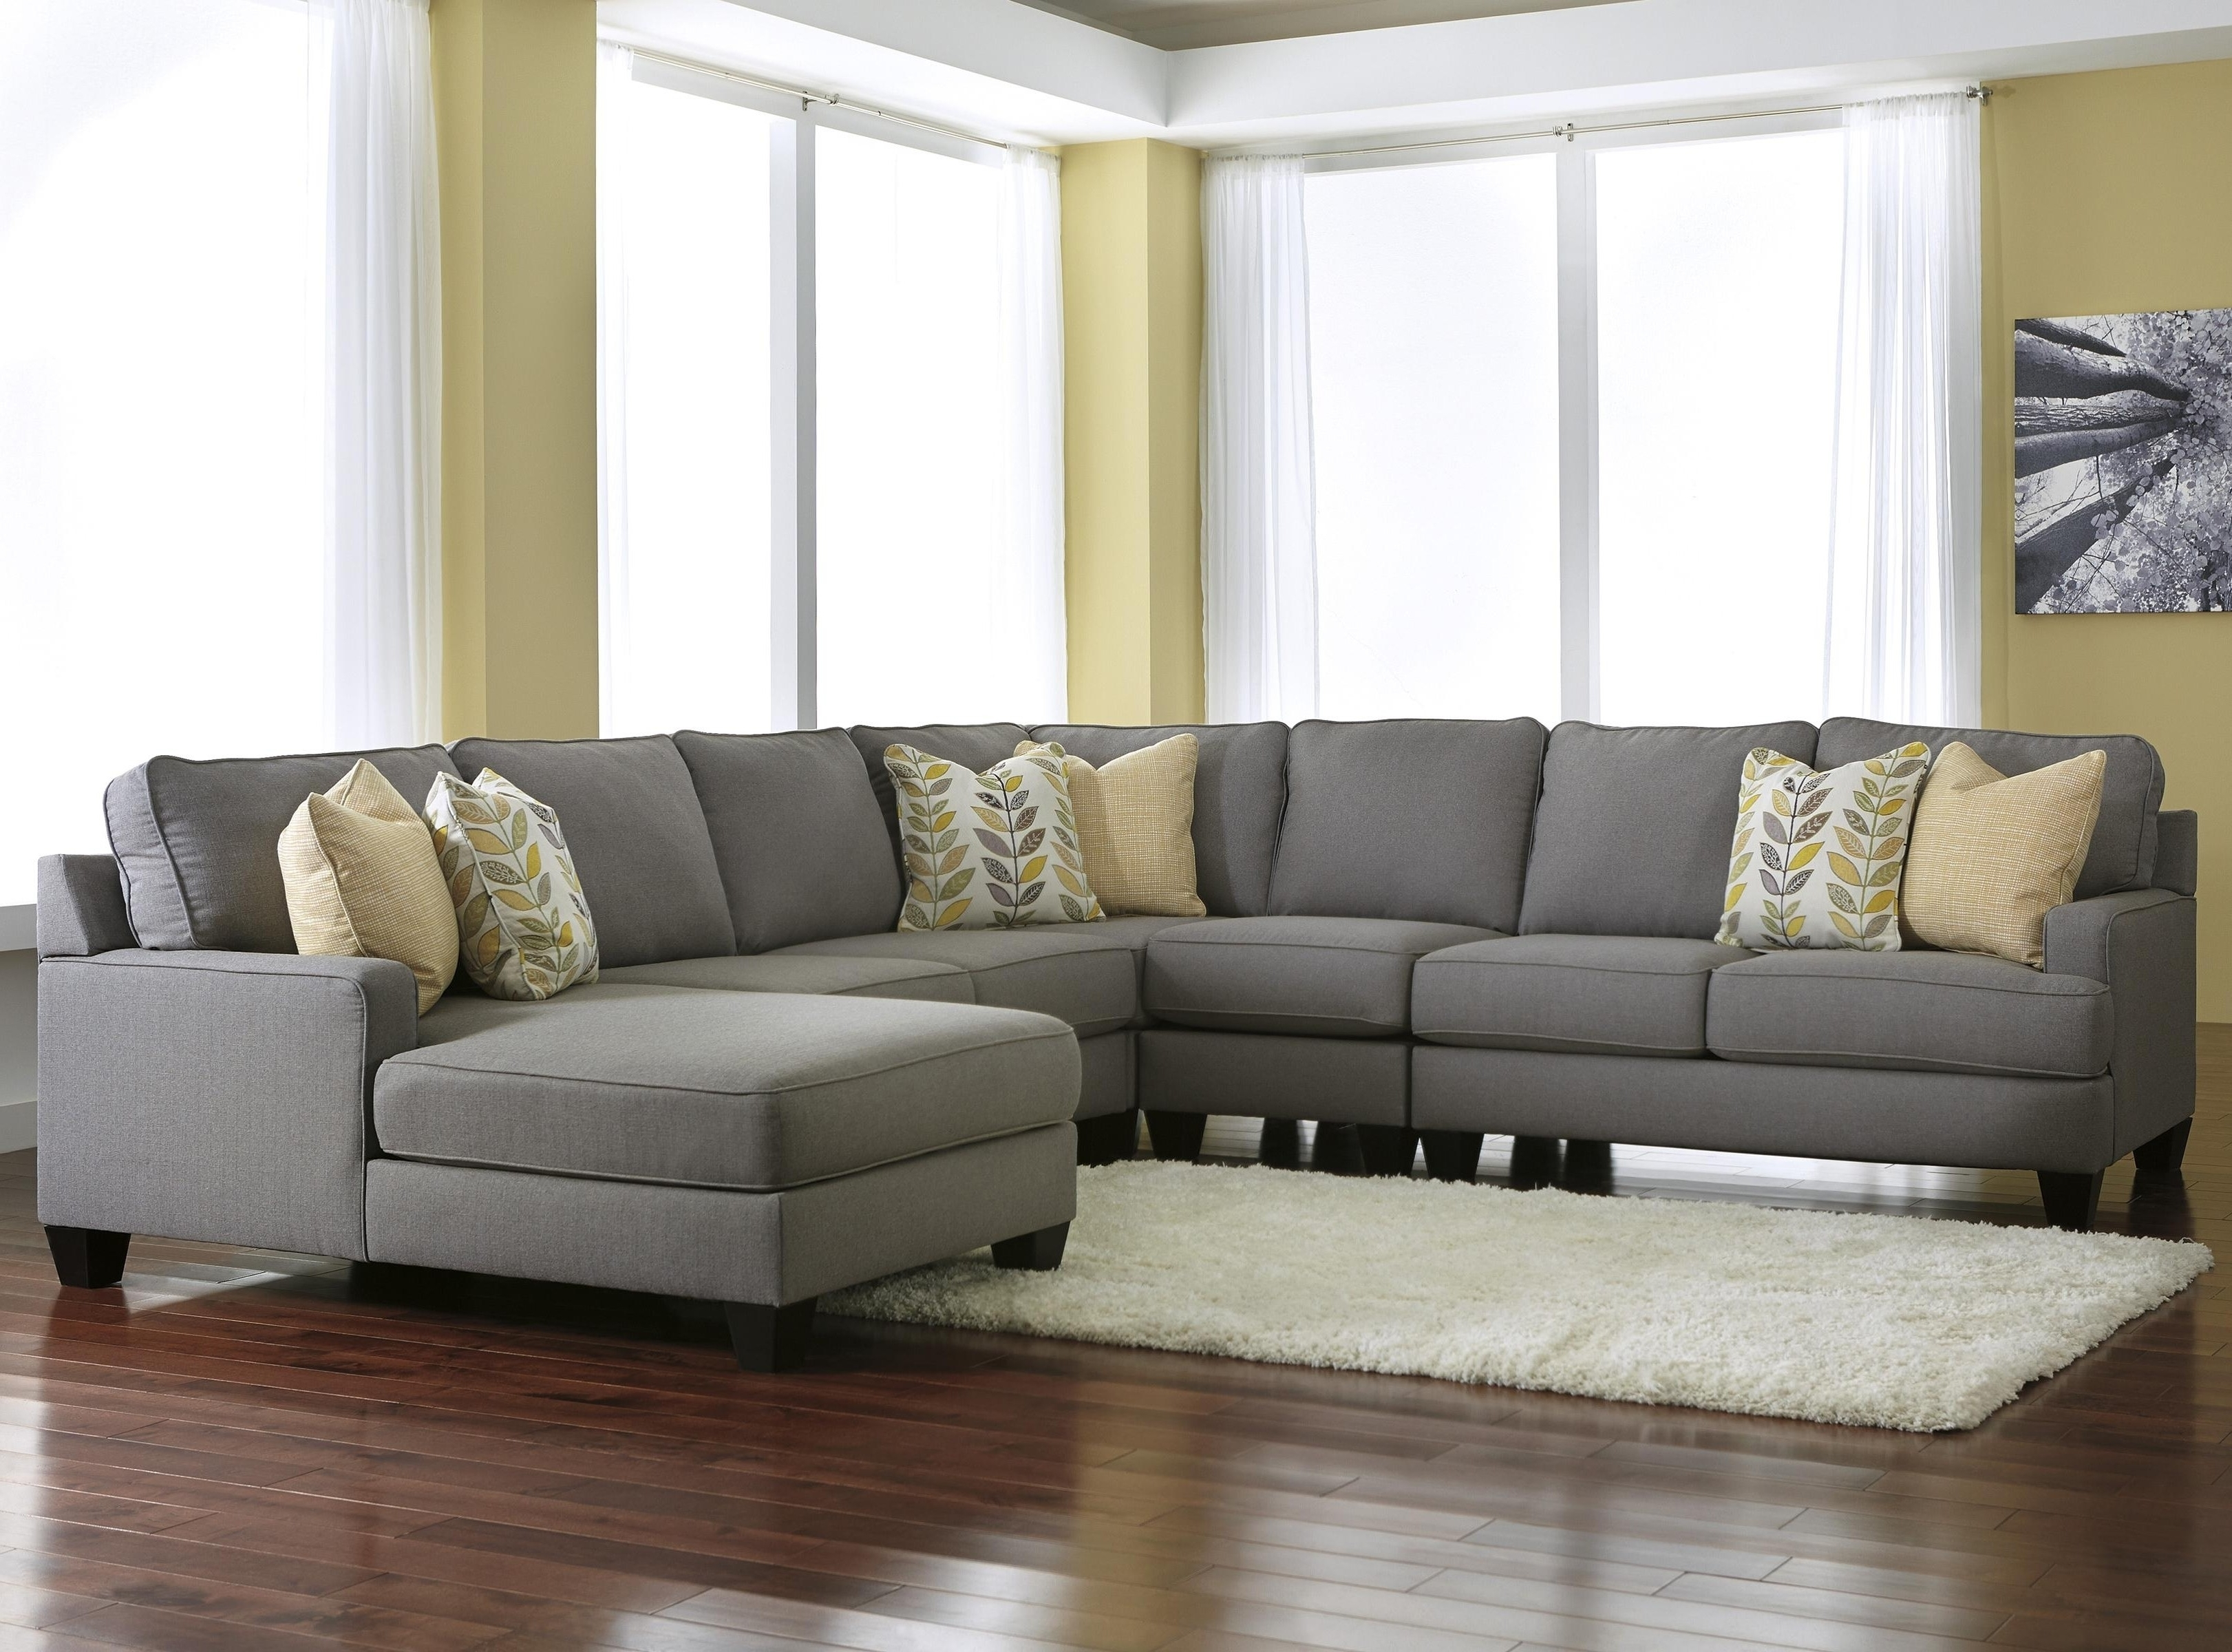 Best And Newest Mn Sectional Sofas Within Unique Sectional Sofa Mn – Buildsimplehome (View 1 of 20)